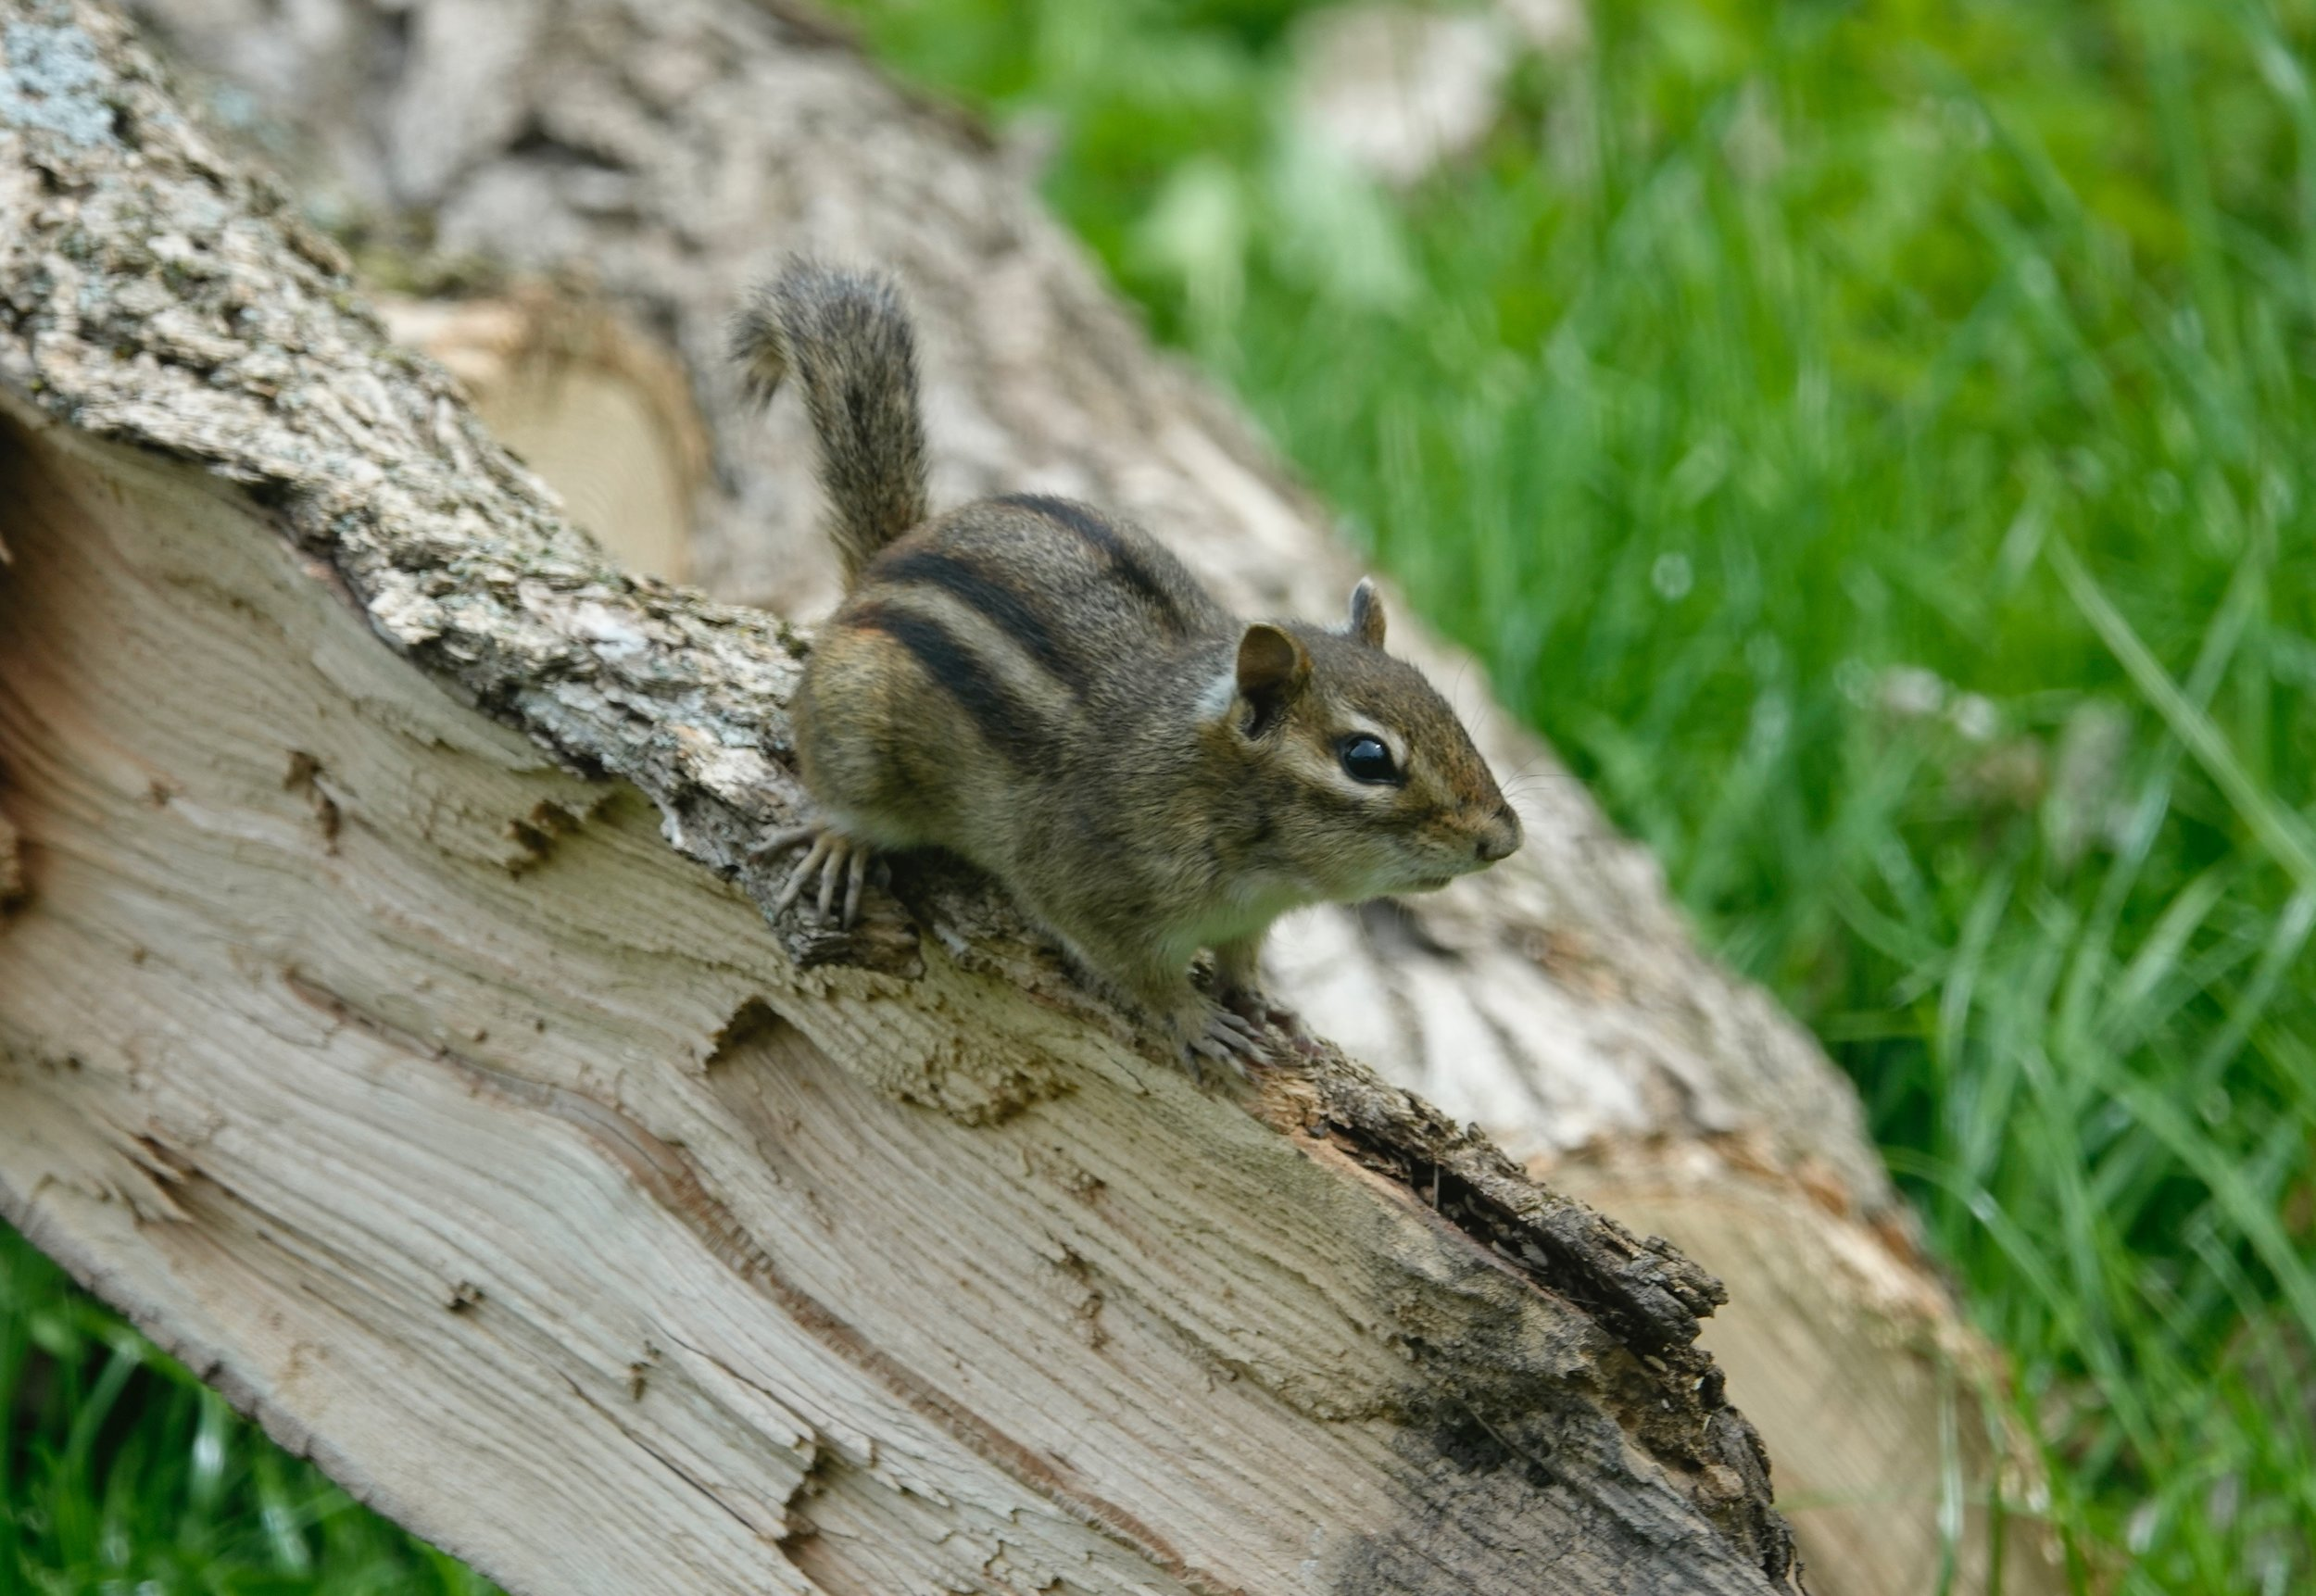 This chipmunk was chipping as if it had chopped down the tree.